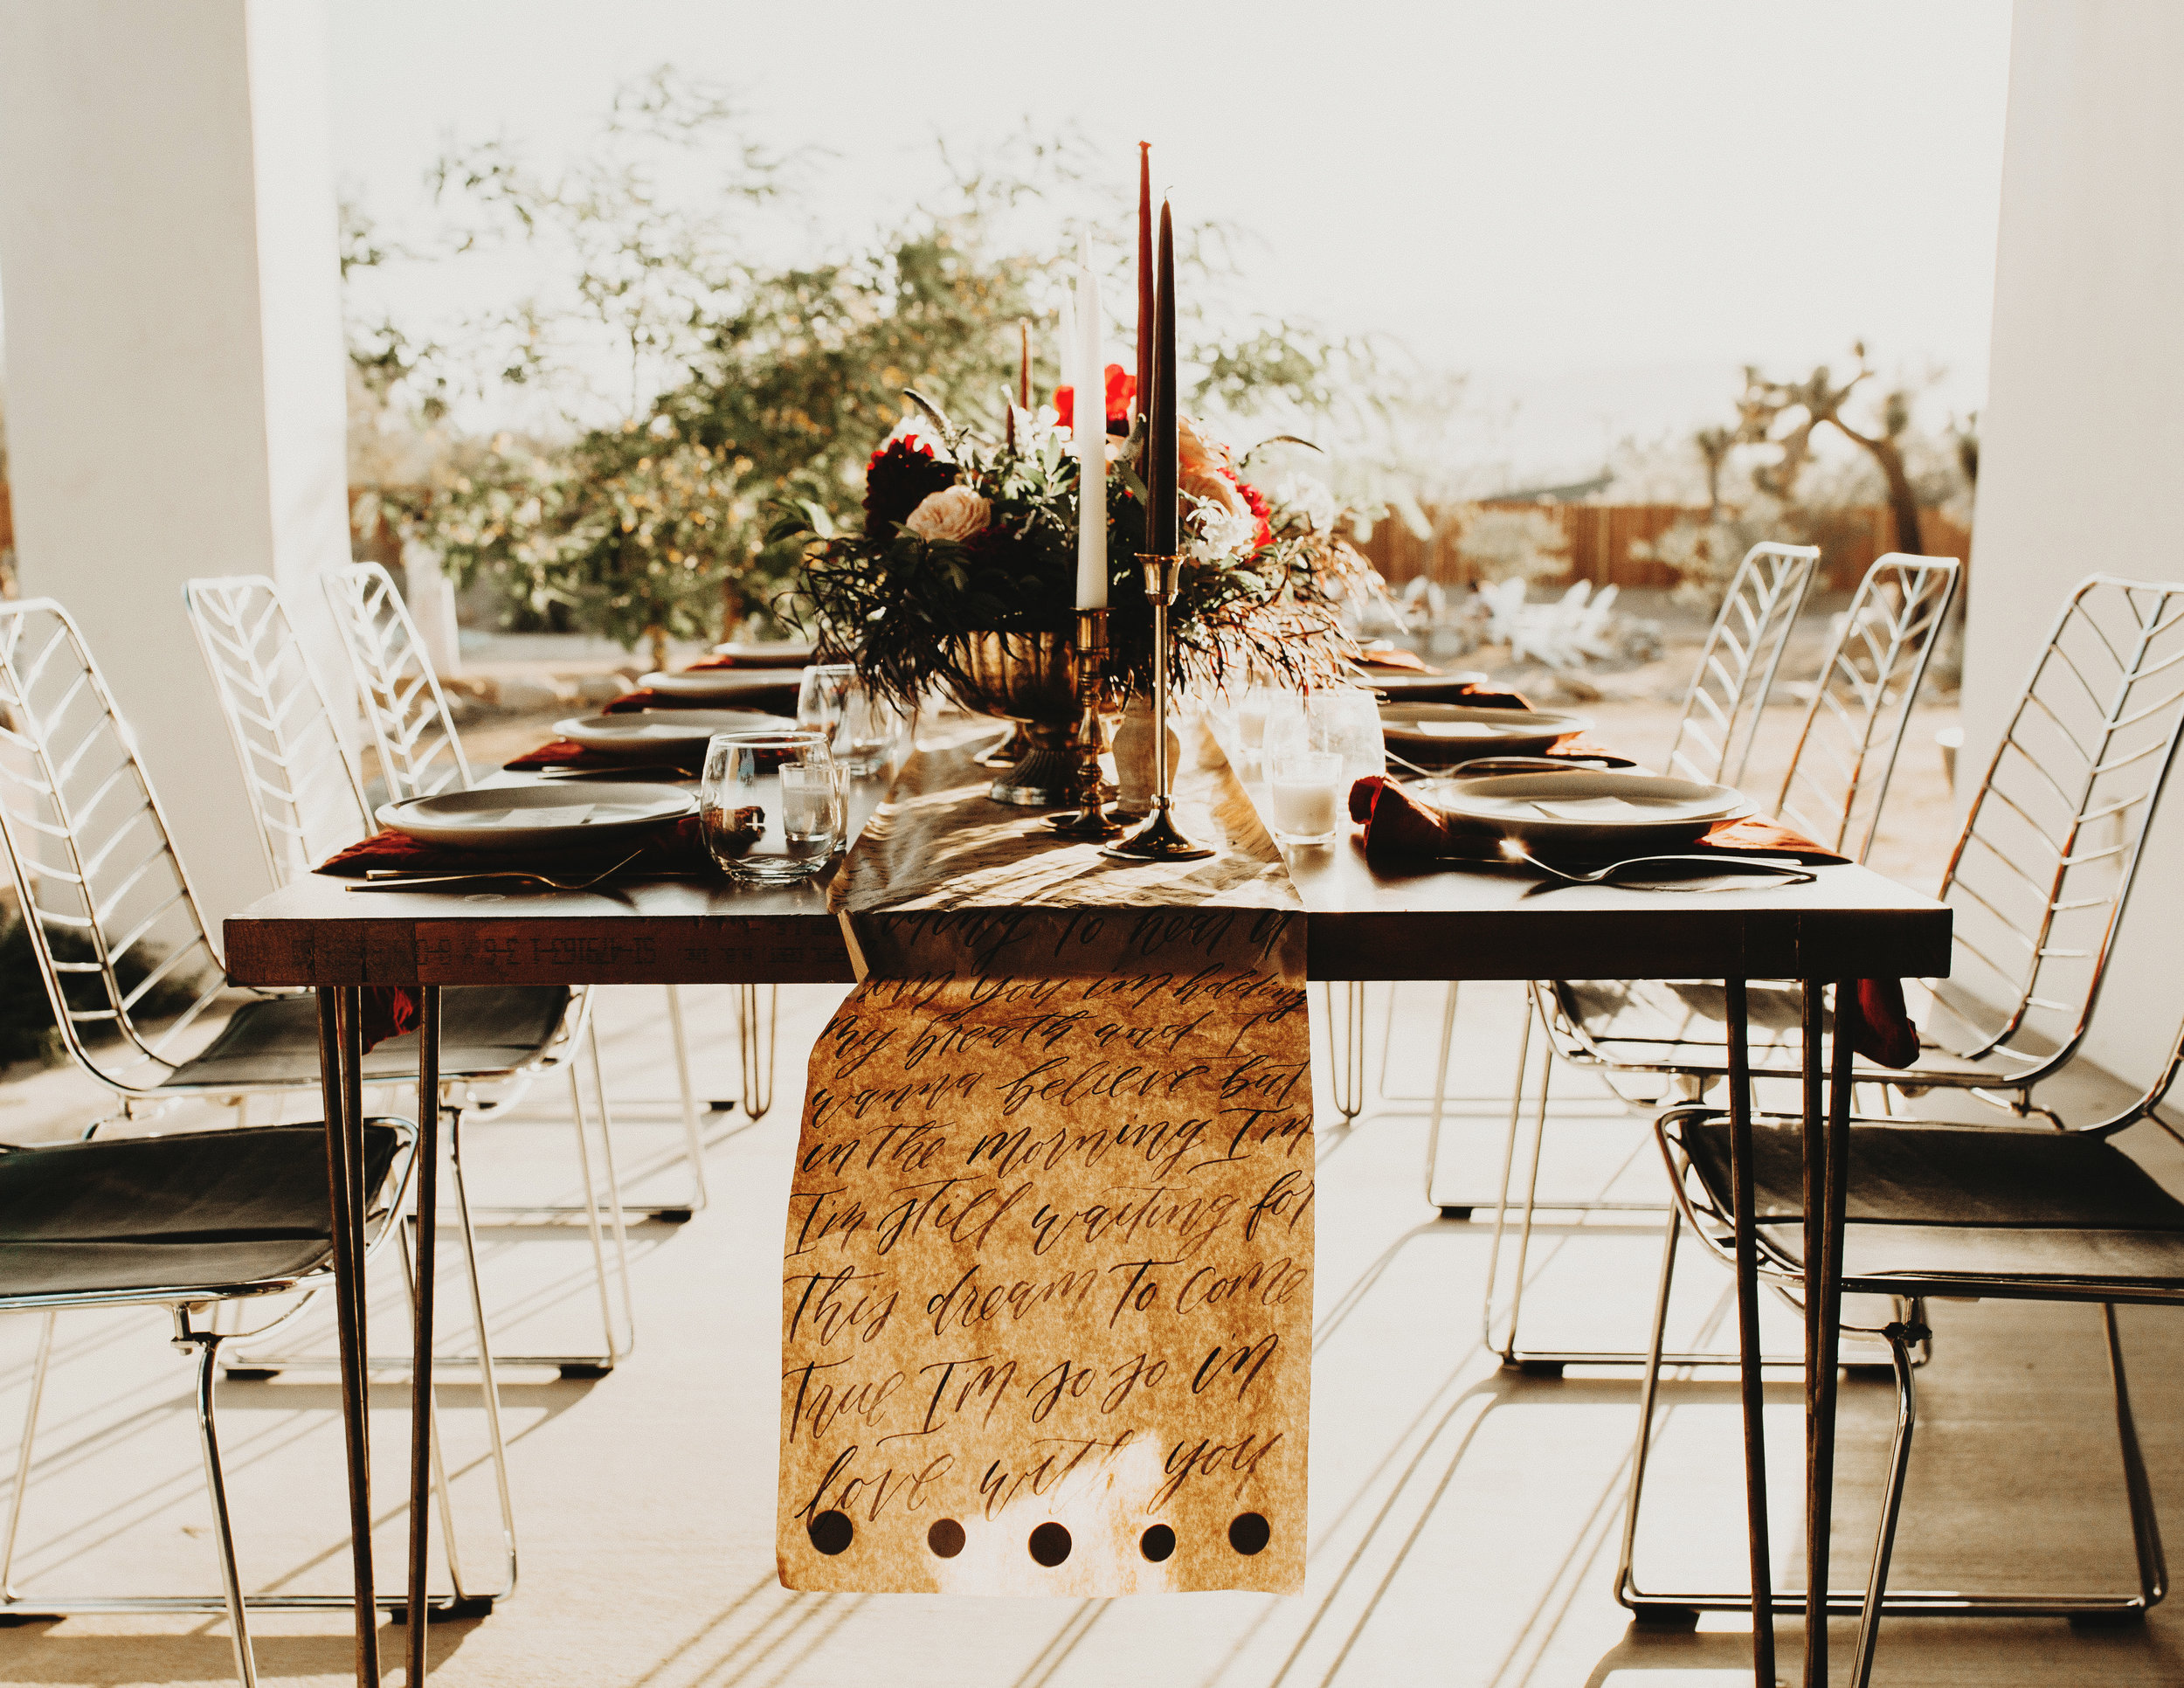 Having a smaller guest count creates an intimate celebration and makes those you invited feel that much more special and cherished.